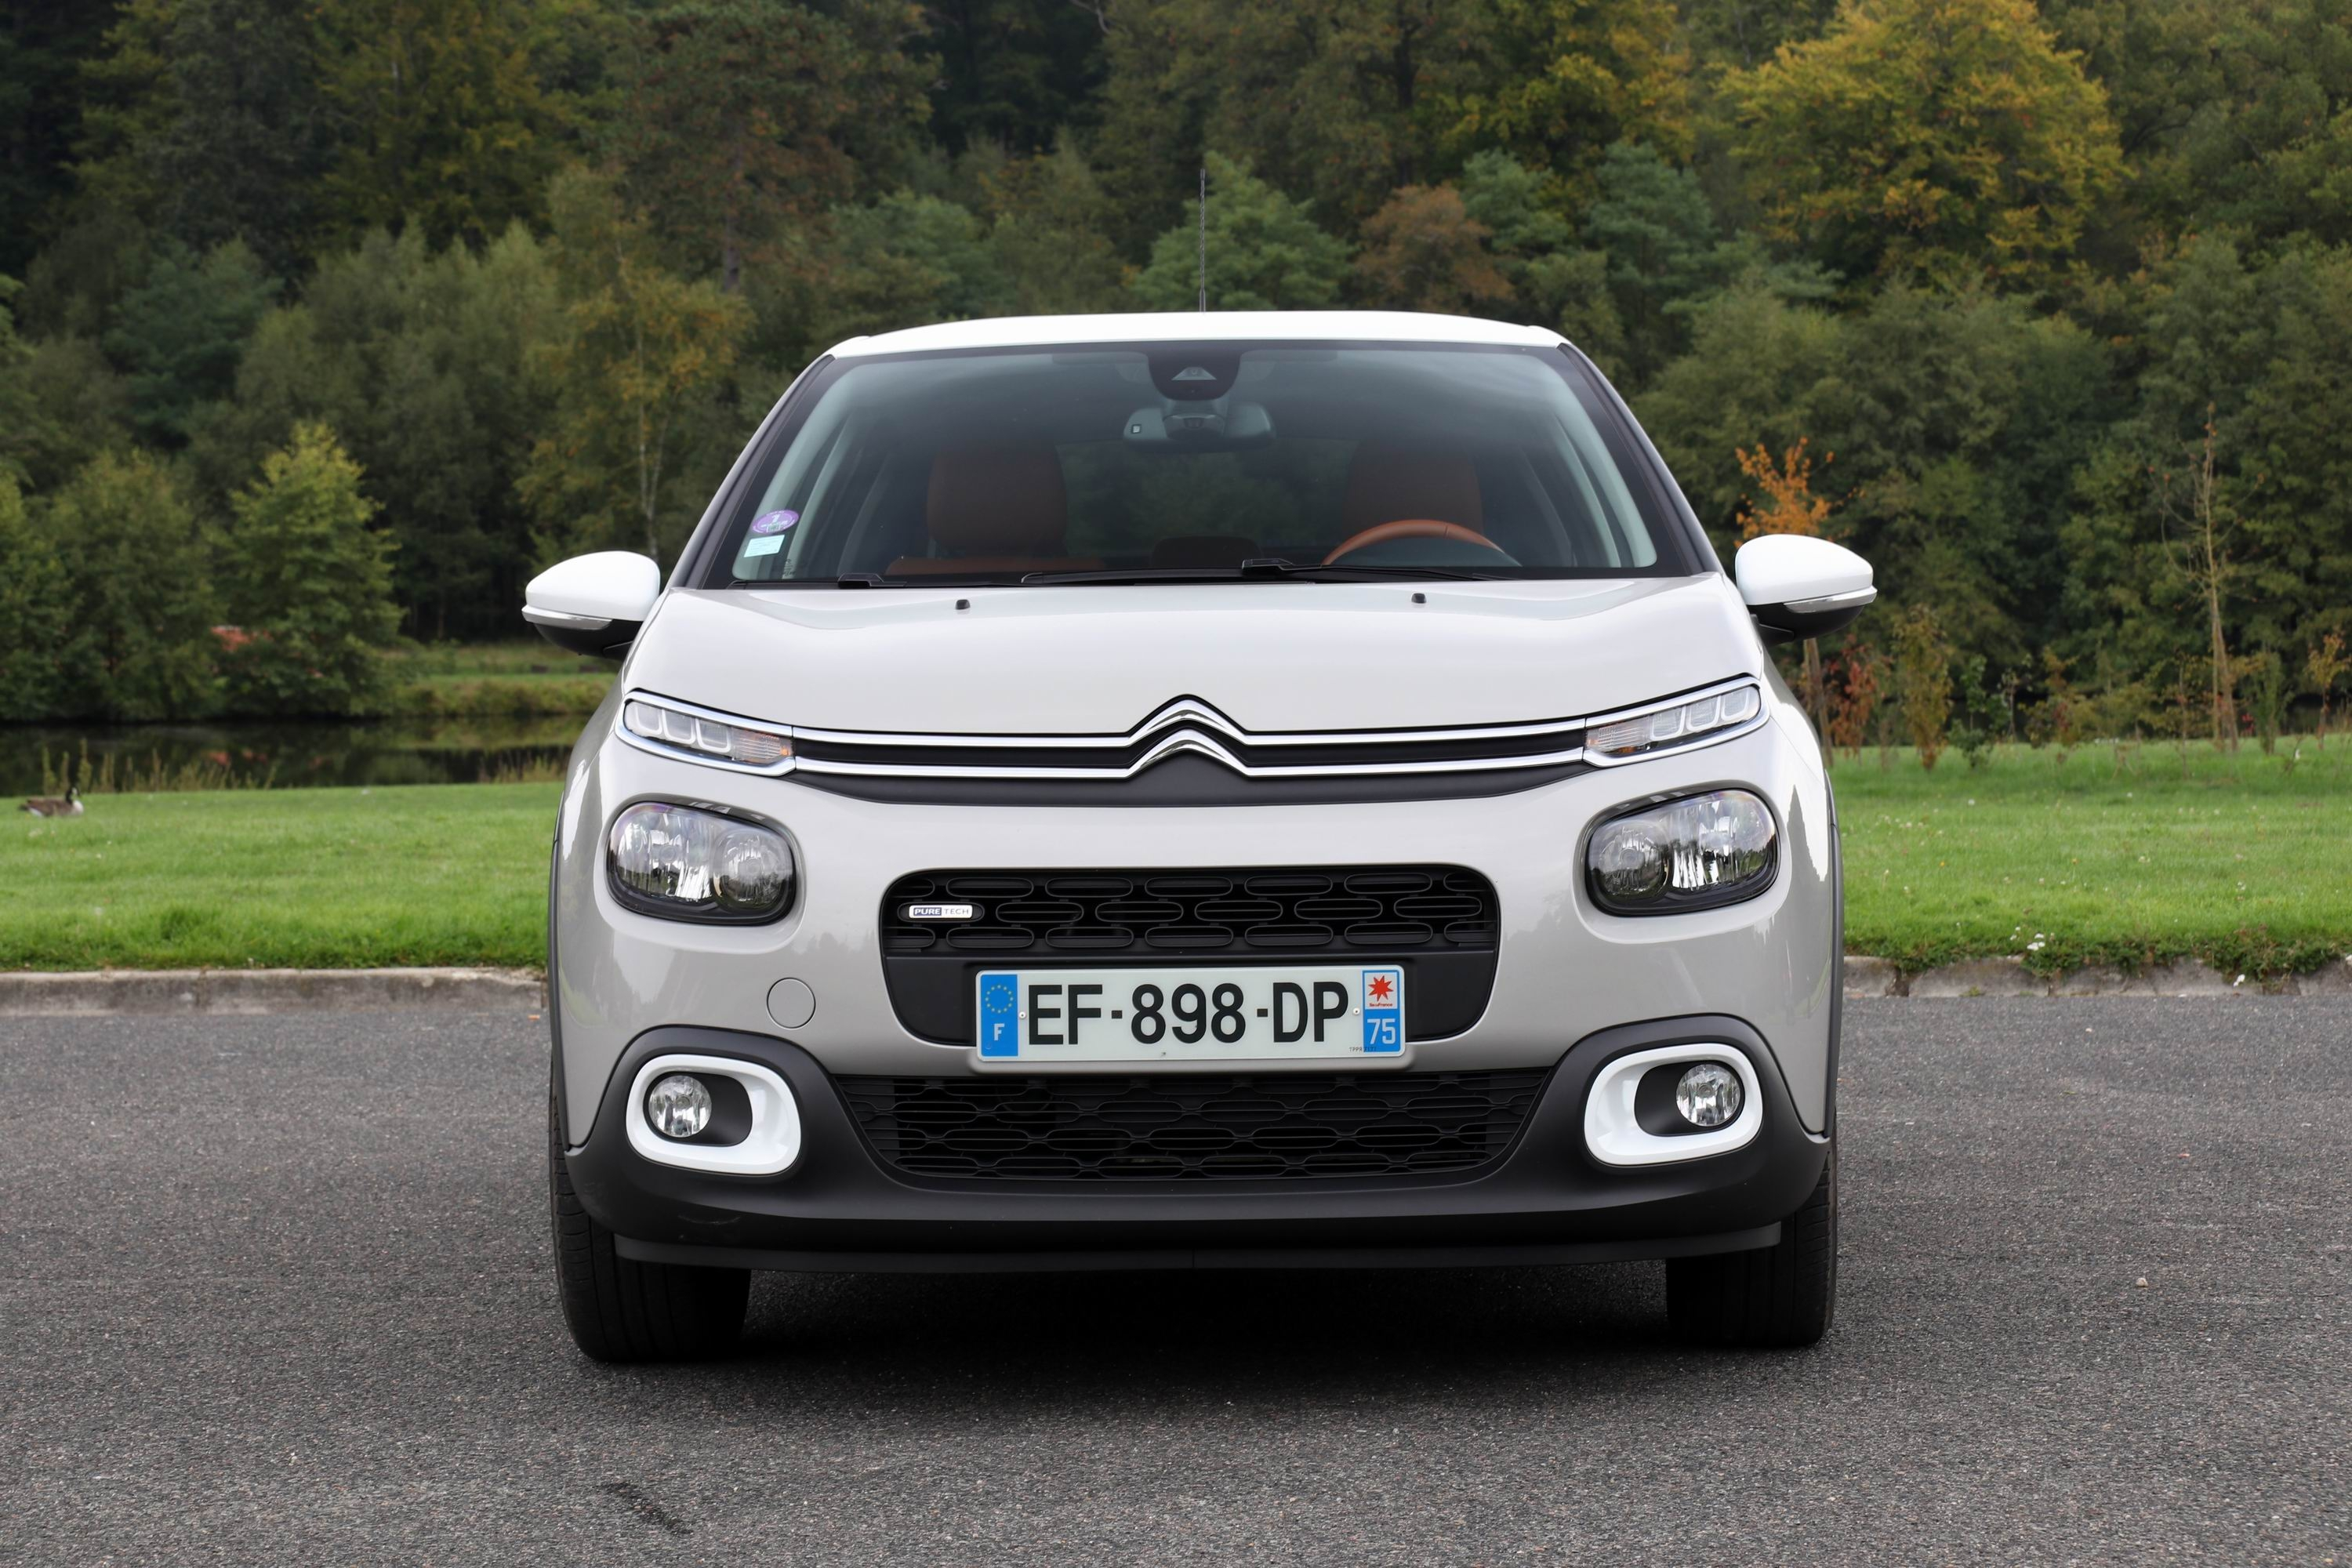 S0-compara​tif-video-​citroen-c3​-vs-seat-i​biza-53135​2